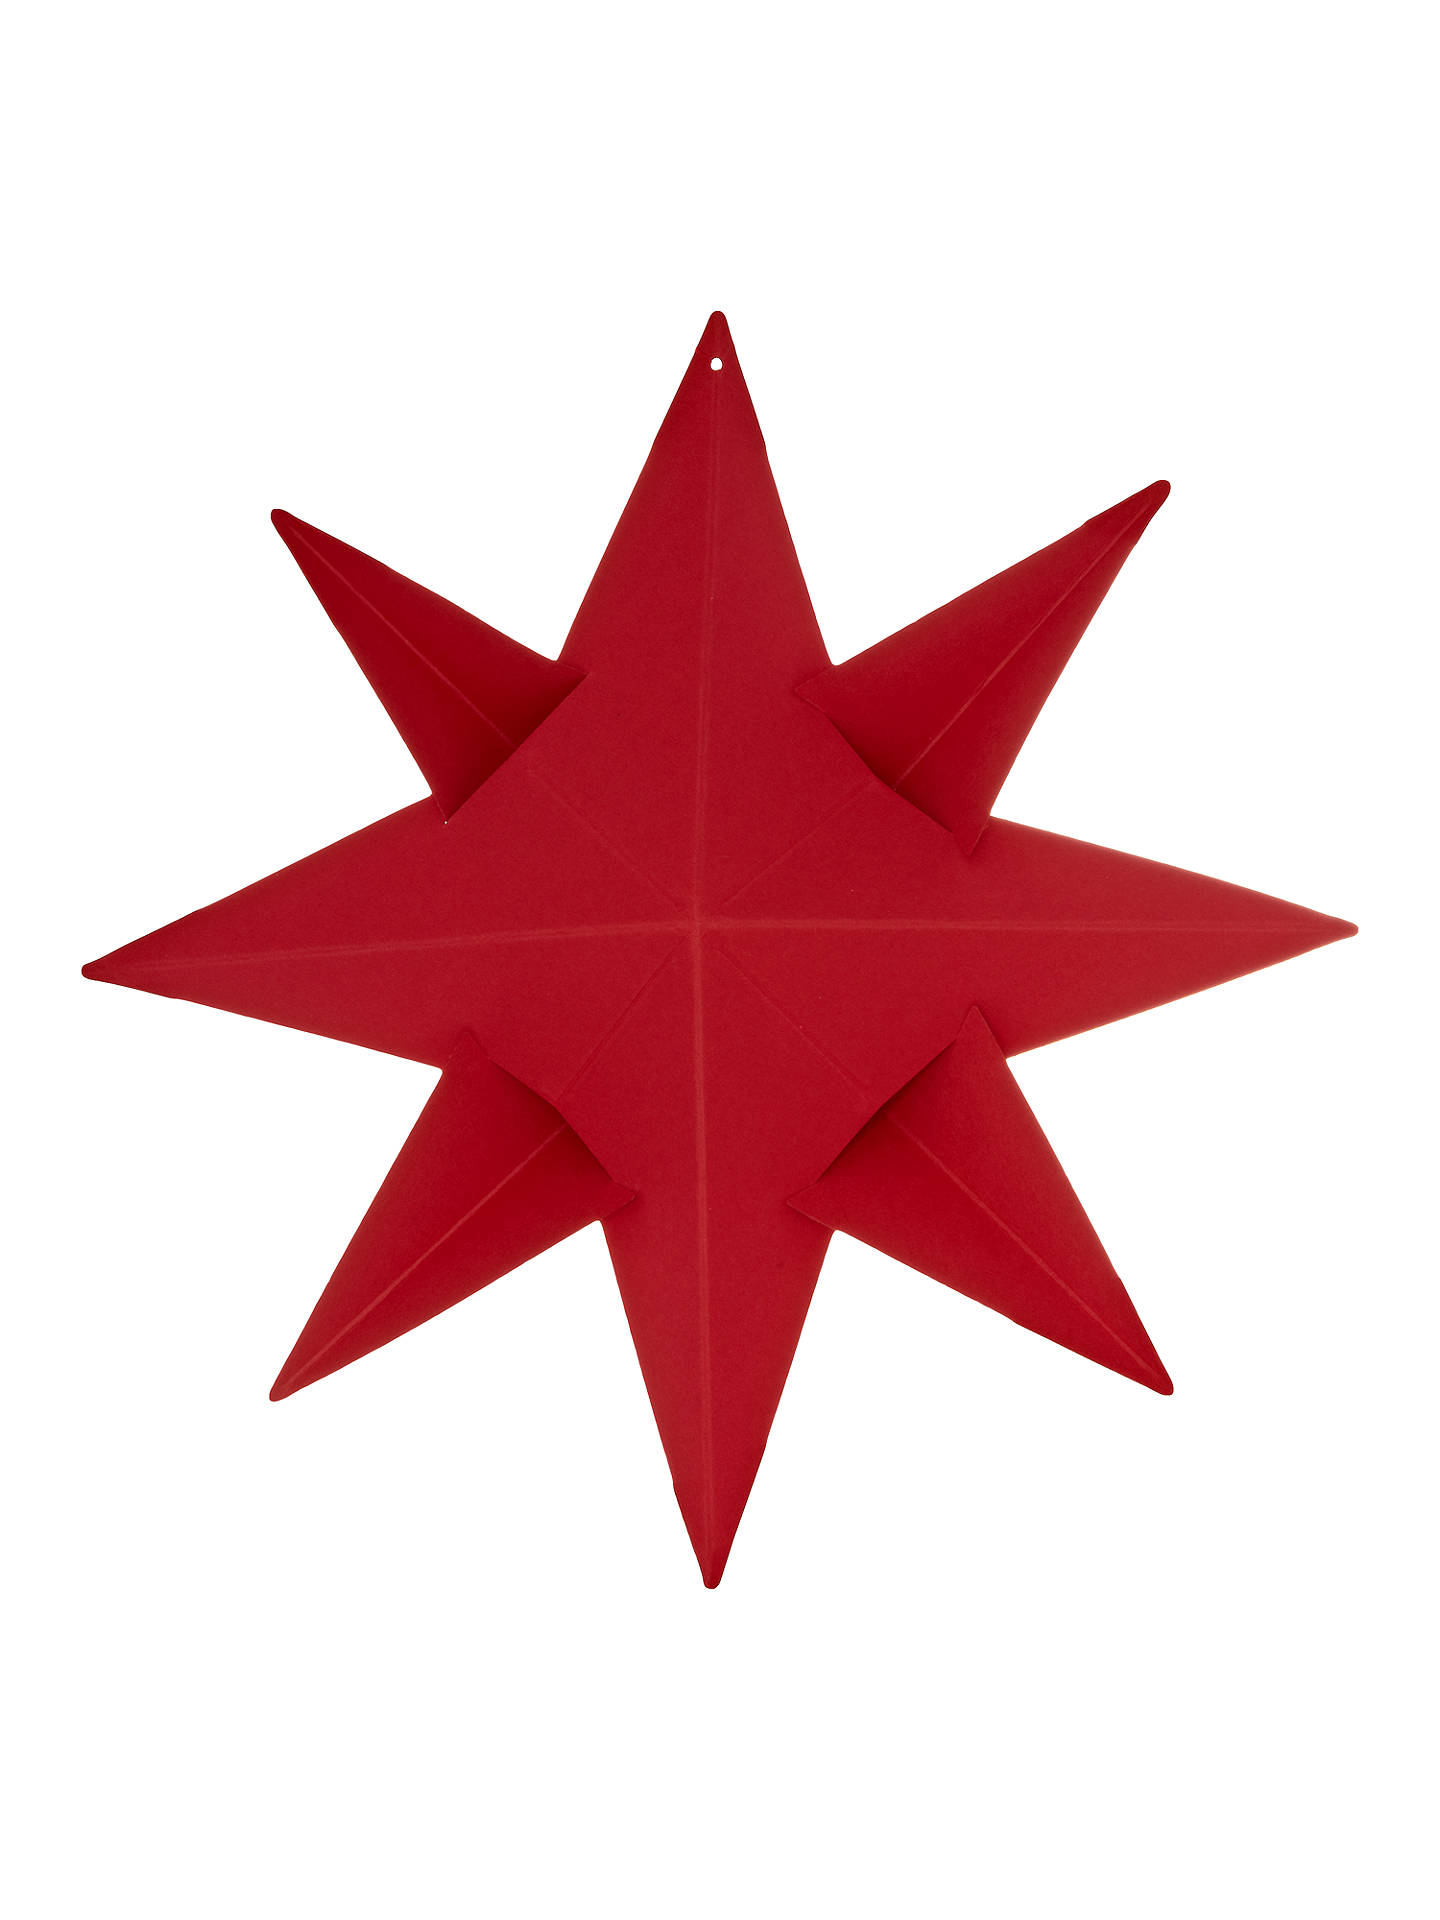 4814d51869 Buy Livingly Ingrid 8 Pointed Star Tree Decoration, Red Online at  johnlewis.com ...